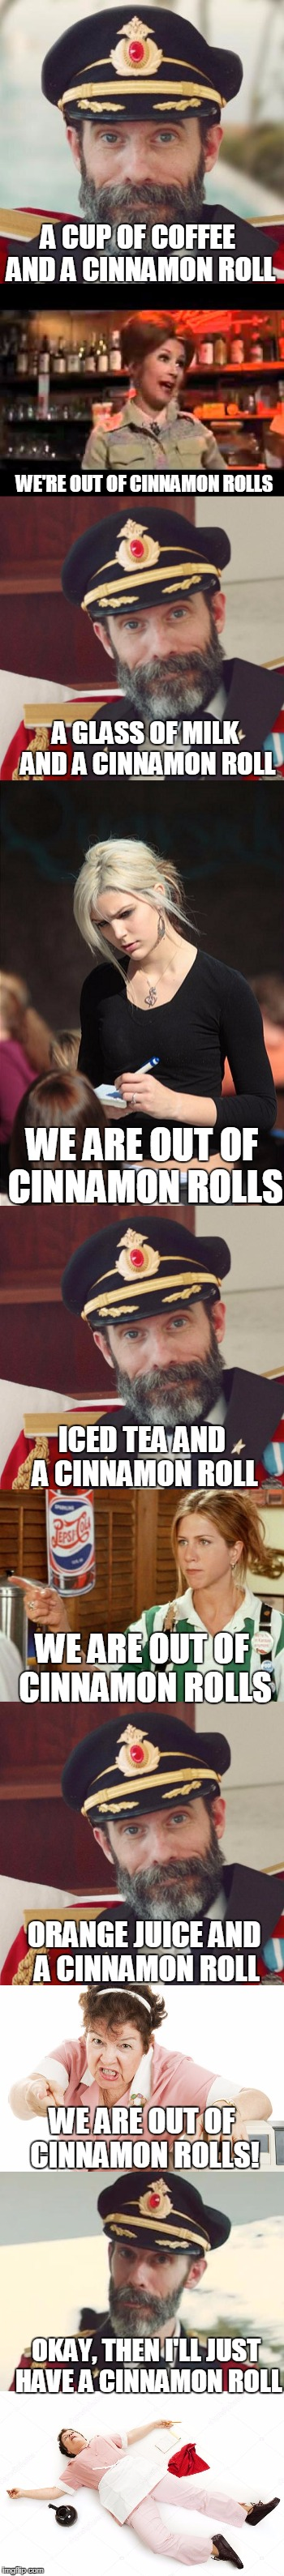 In Search of a cinnamon roll | A CUP OF COFFEE AND A CINNAMON ROLL WE'RE OUT OF CINNAMON ROLLS A GLASS OF MILK AND A CINNAMON ROLL WE ARE OUT OF CINNAMON ROLLS ICED TEA AN | image tagged in funny,too funny,captain obvious,waitress,angry waitress | made w/ Imgflip meme maker